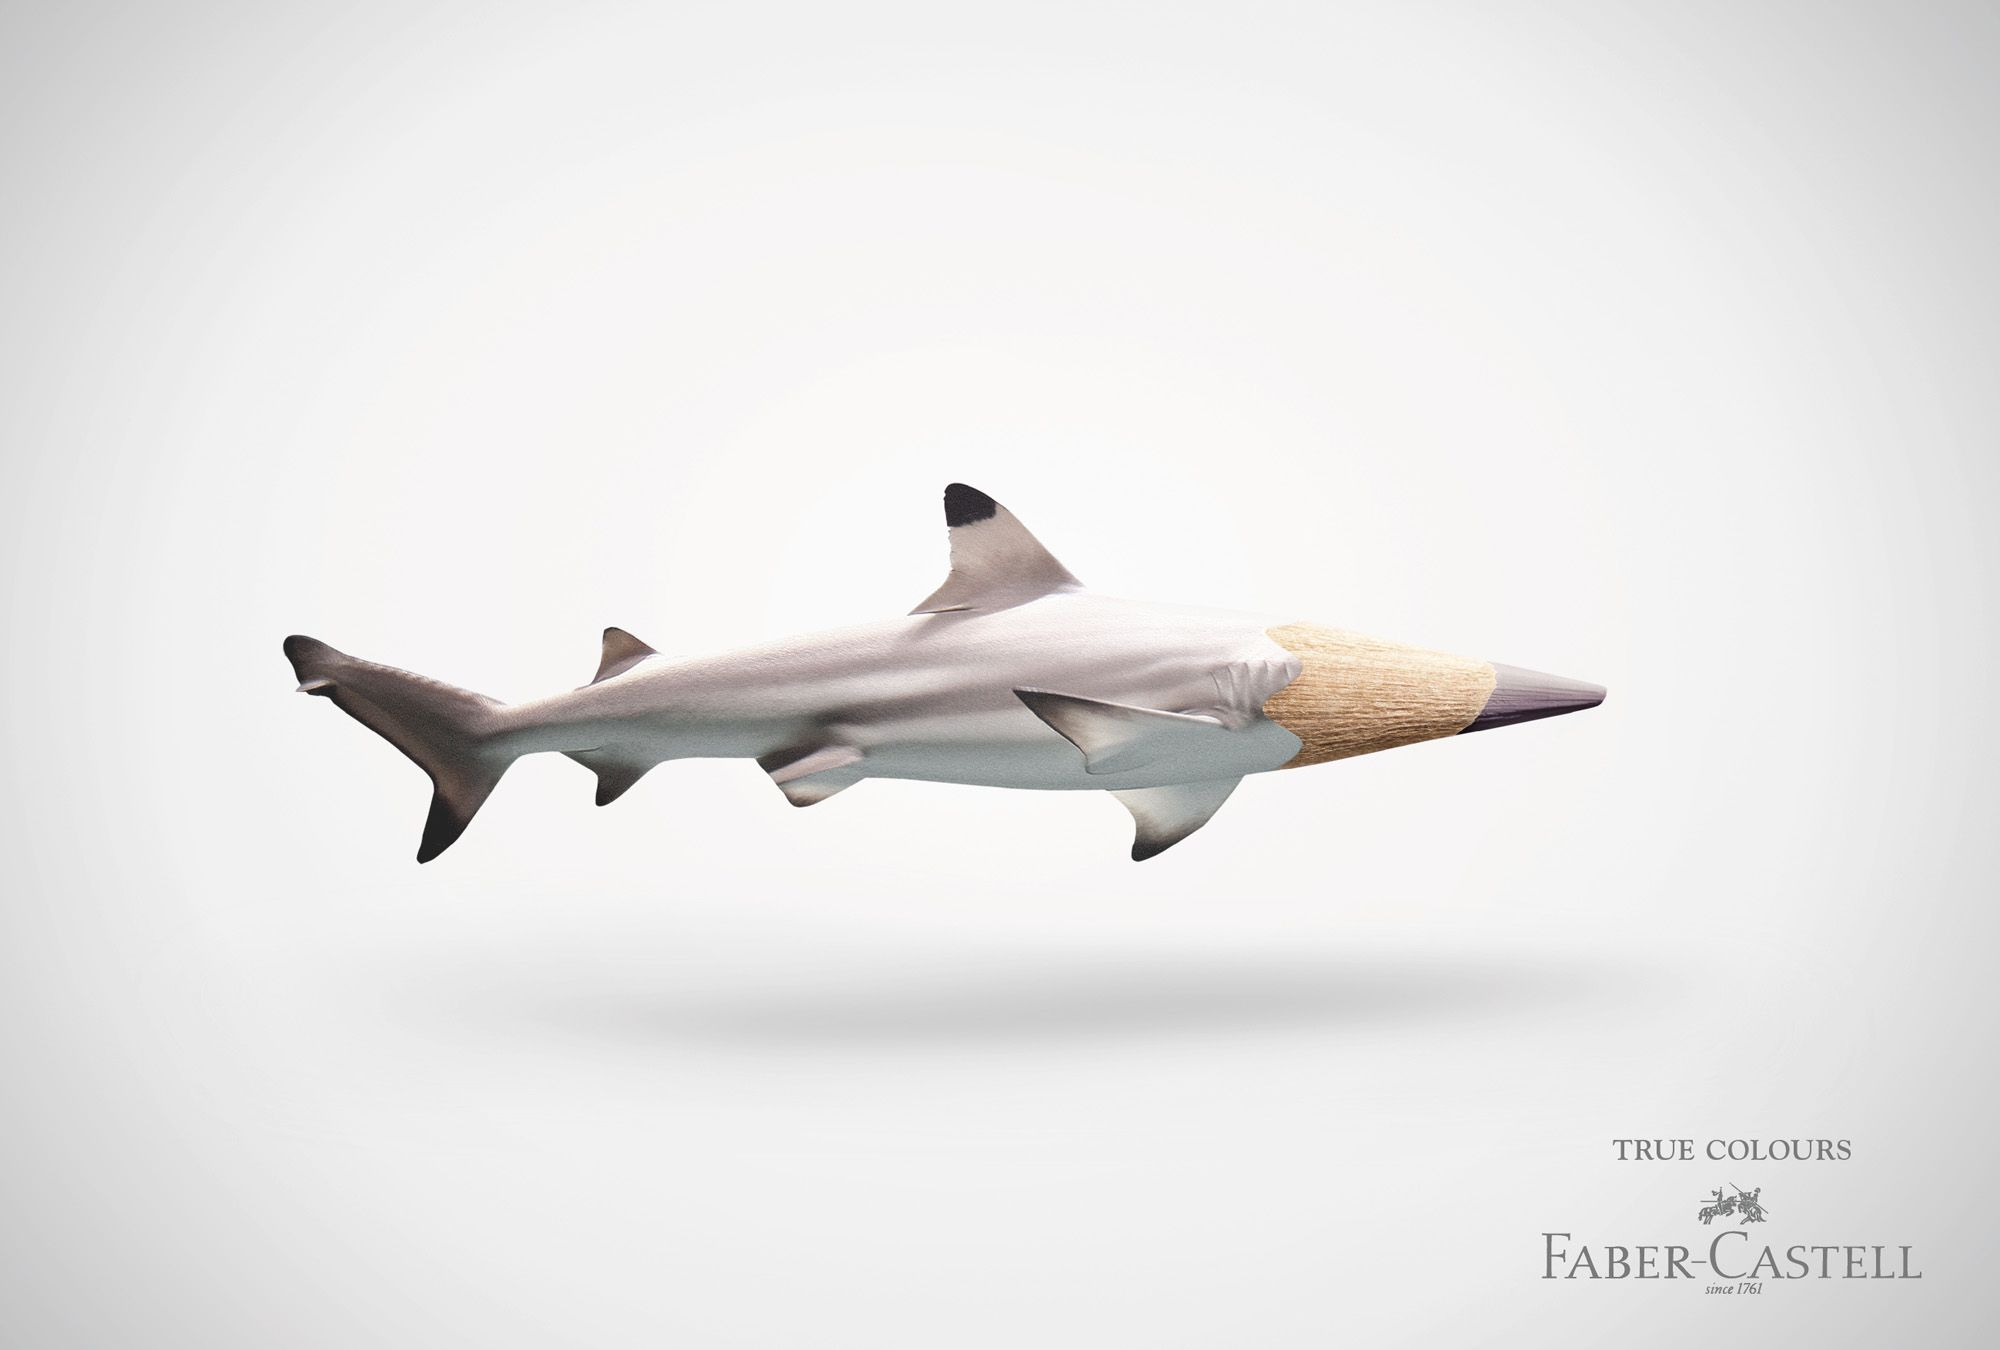 Faber Castell True Colours Advertising Agency Serviceplan Munich Germany